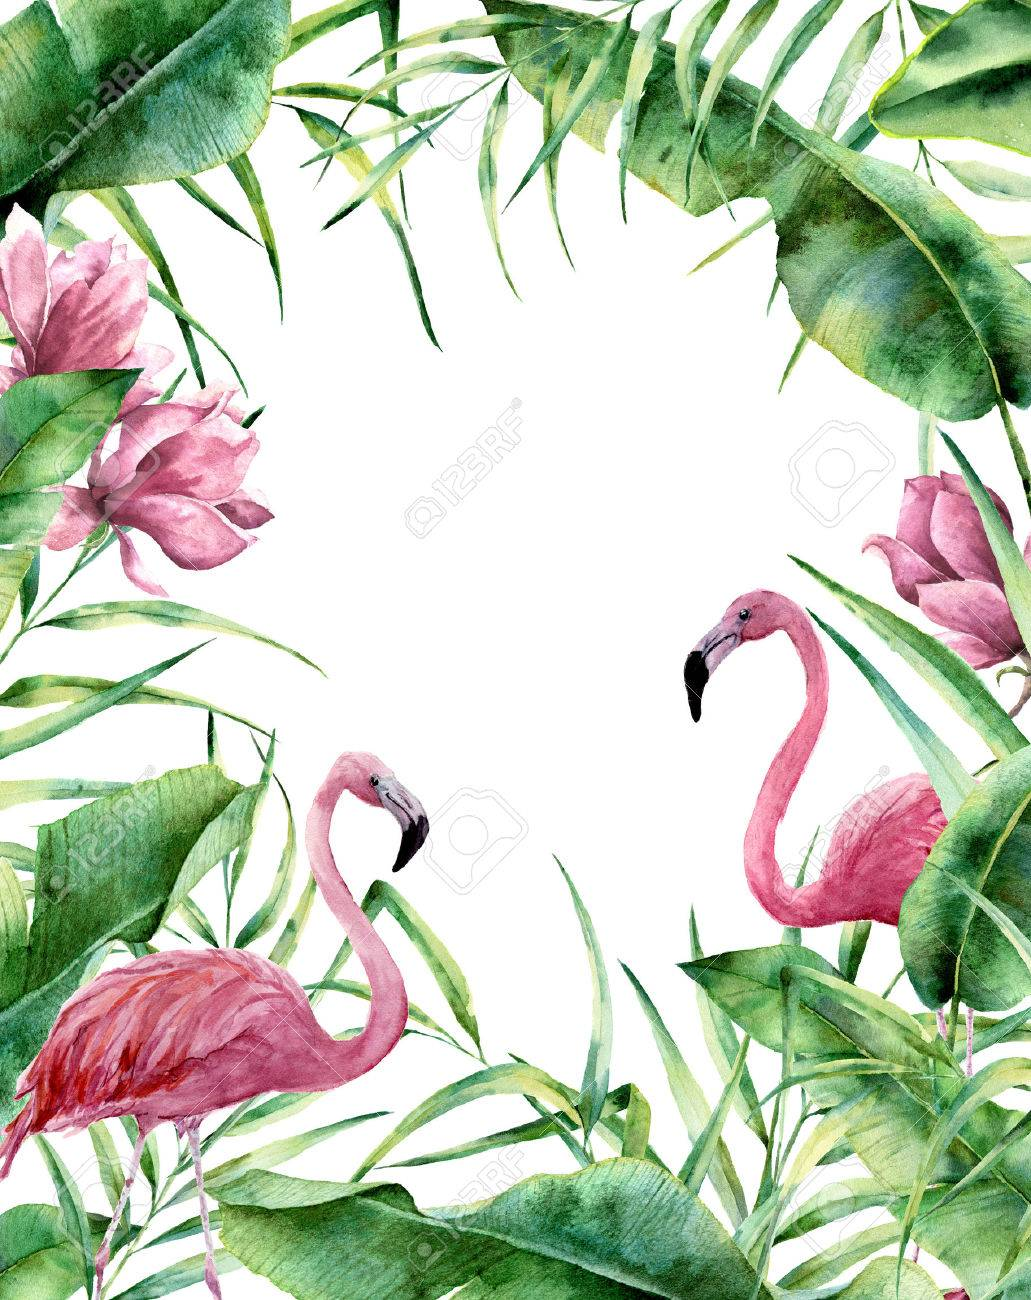 Watercolor tropical frame. Hand painted exotic floral border with palm tree leaves, banana branch, magnolia flowers and flamingo isolated on white background. For wedding and greeting design or print. - 77902771